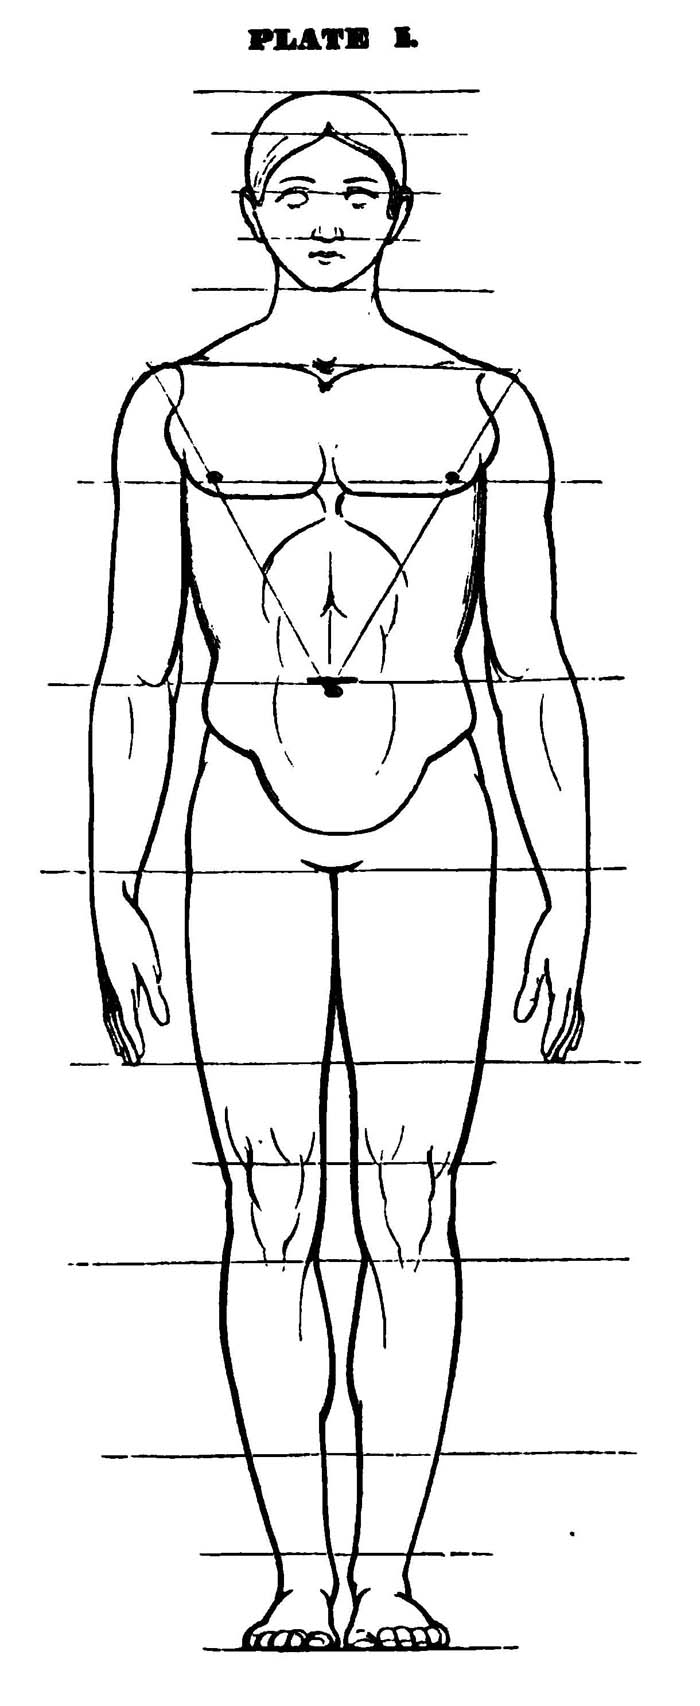 Drawing The Human Head   Face  And Body In The Correct Proportions   Body And Face Drawing